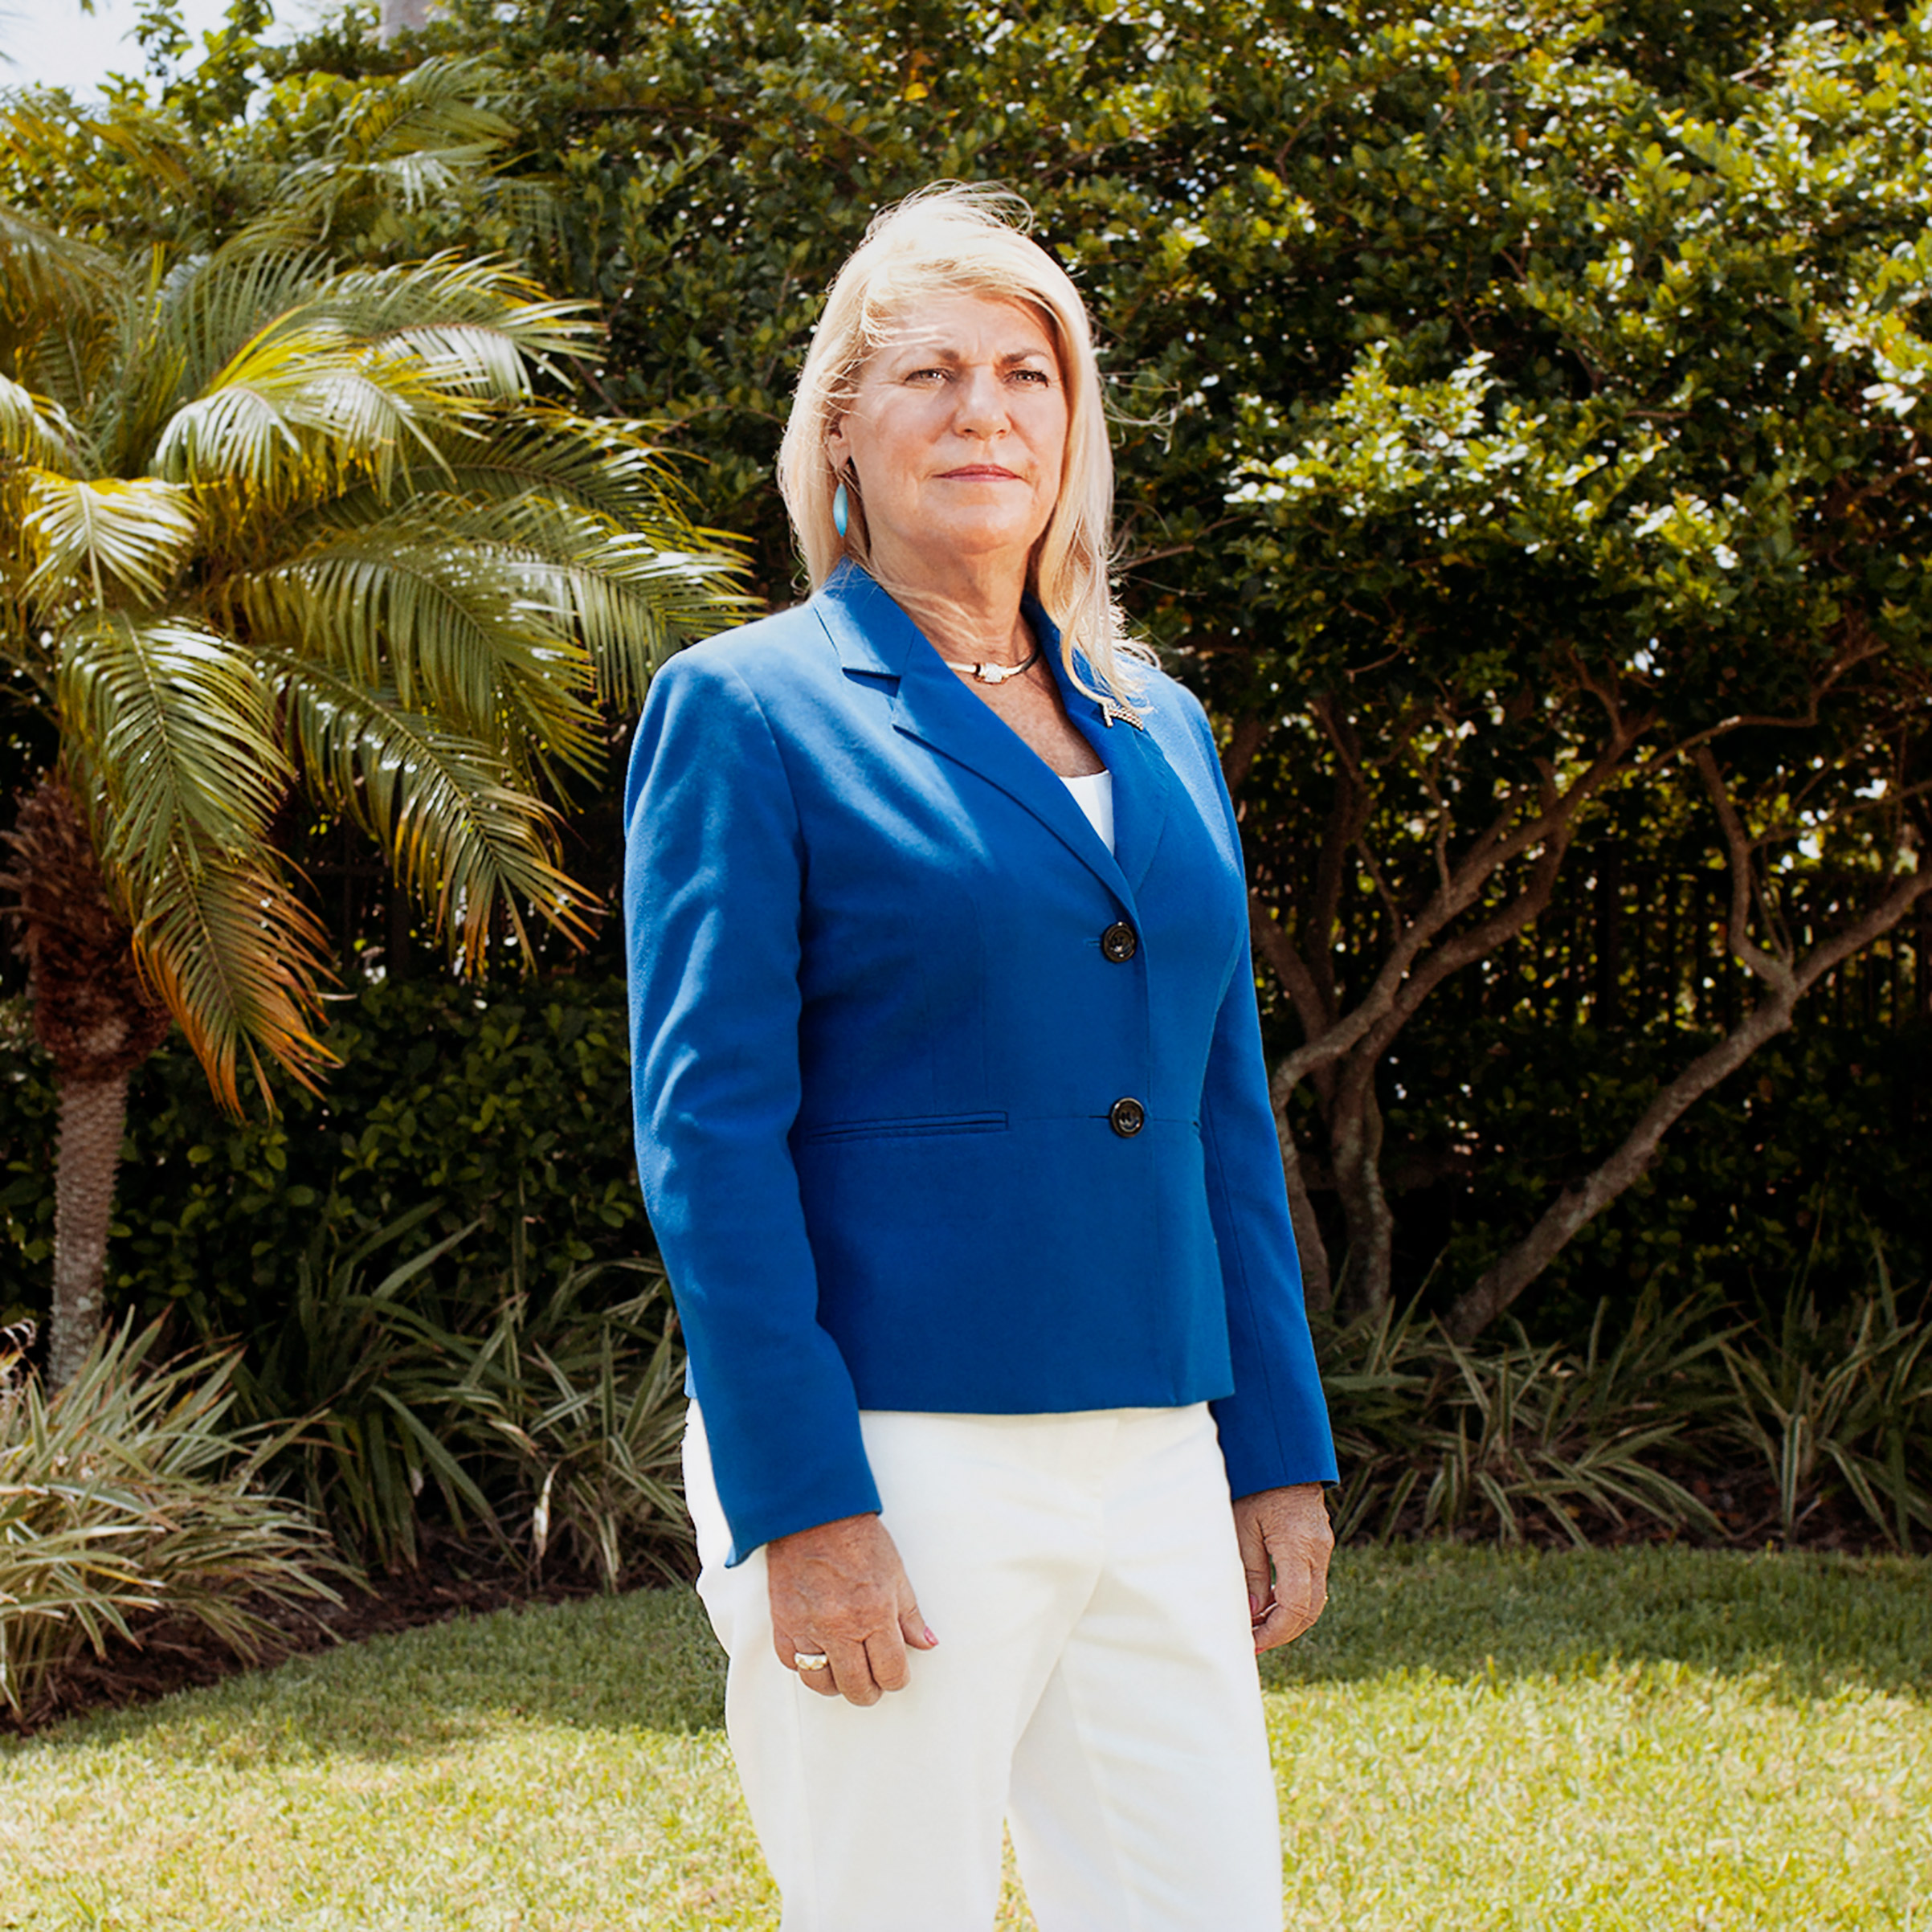 Portrait of General Ann Dunwoody, photographed in the compound of her home in Tampa, FL, August 26, 2016.